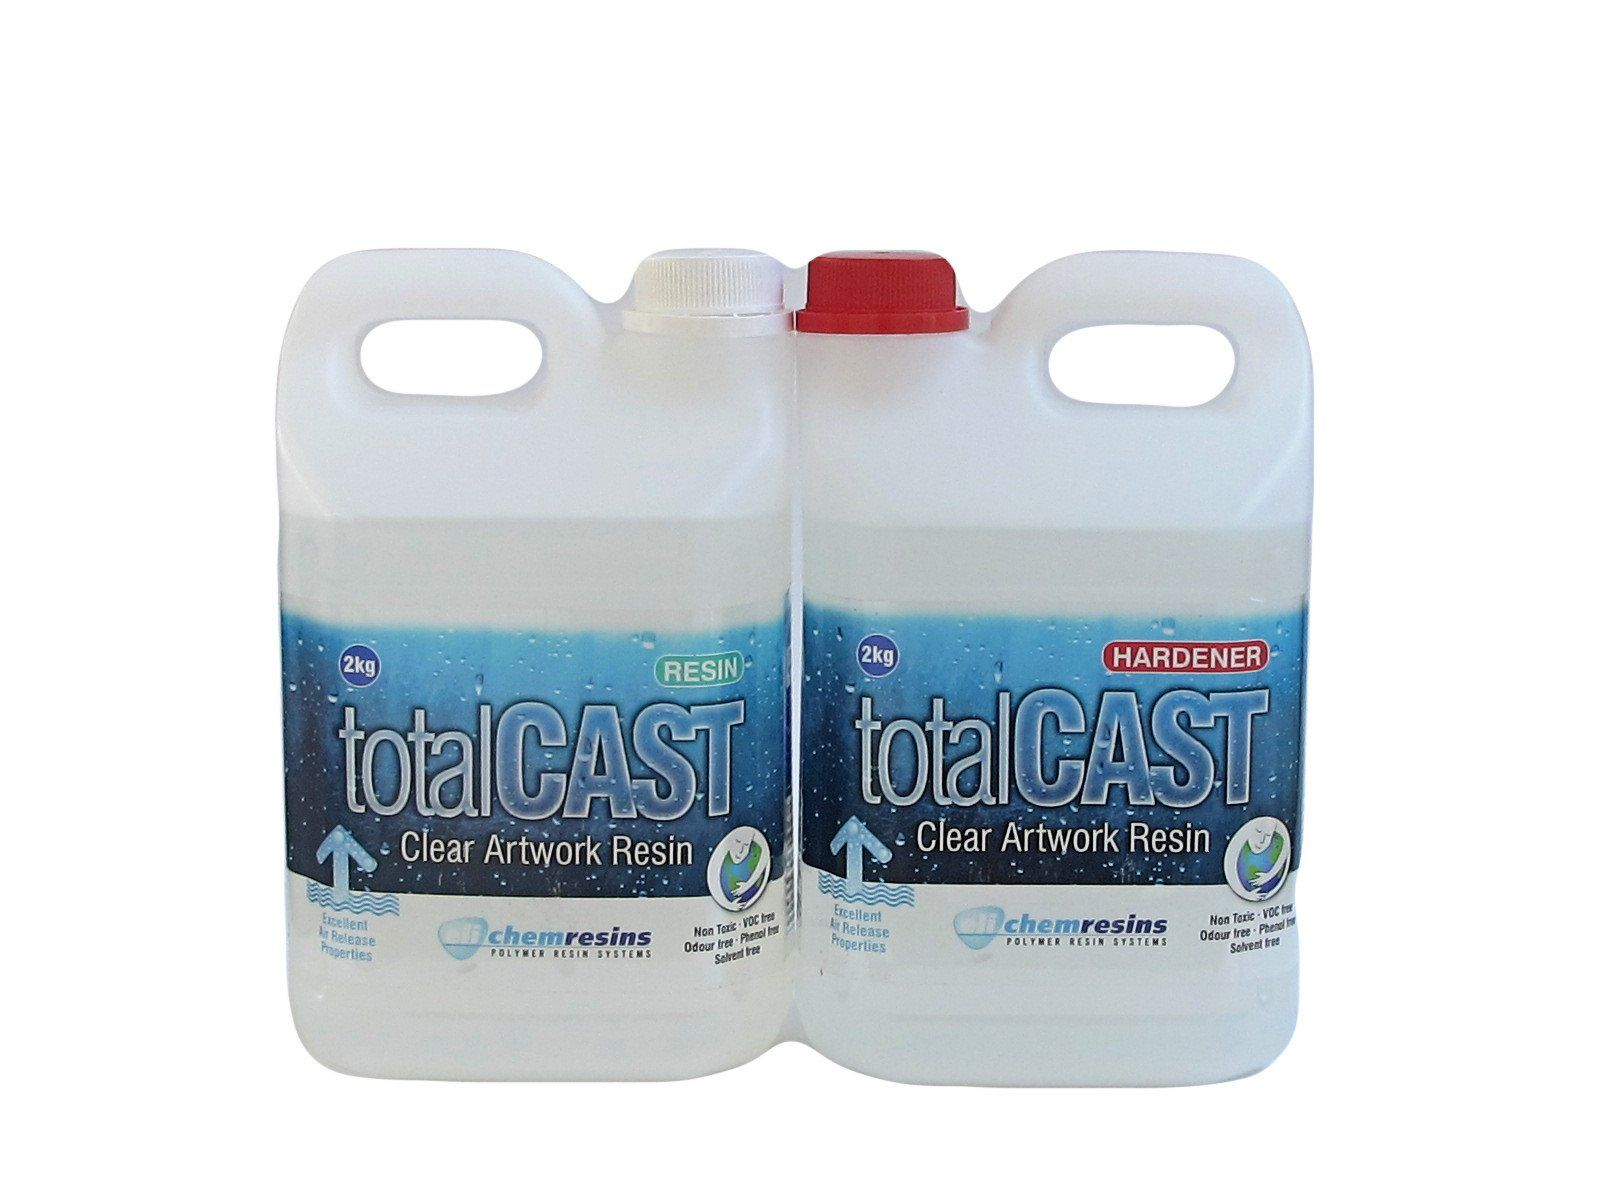 TotalCast Clear Artwork resin 141 ounce kit